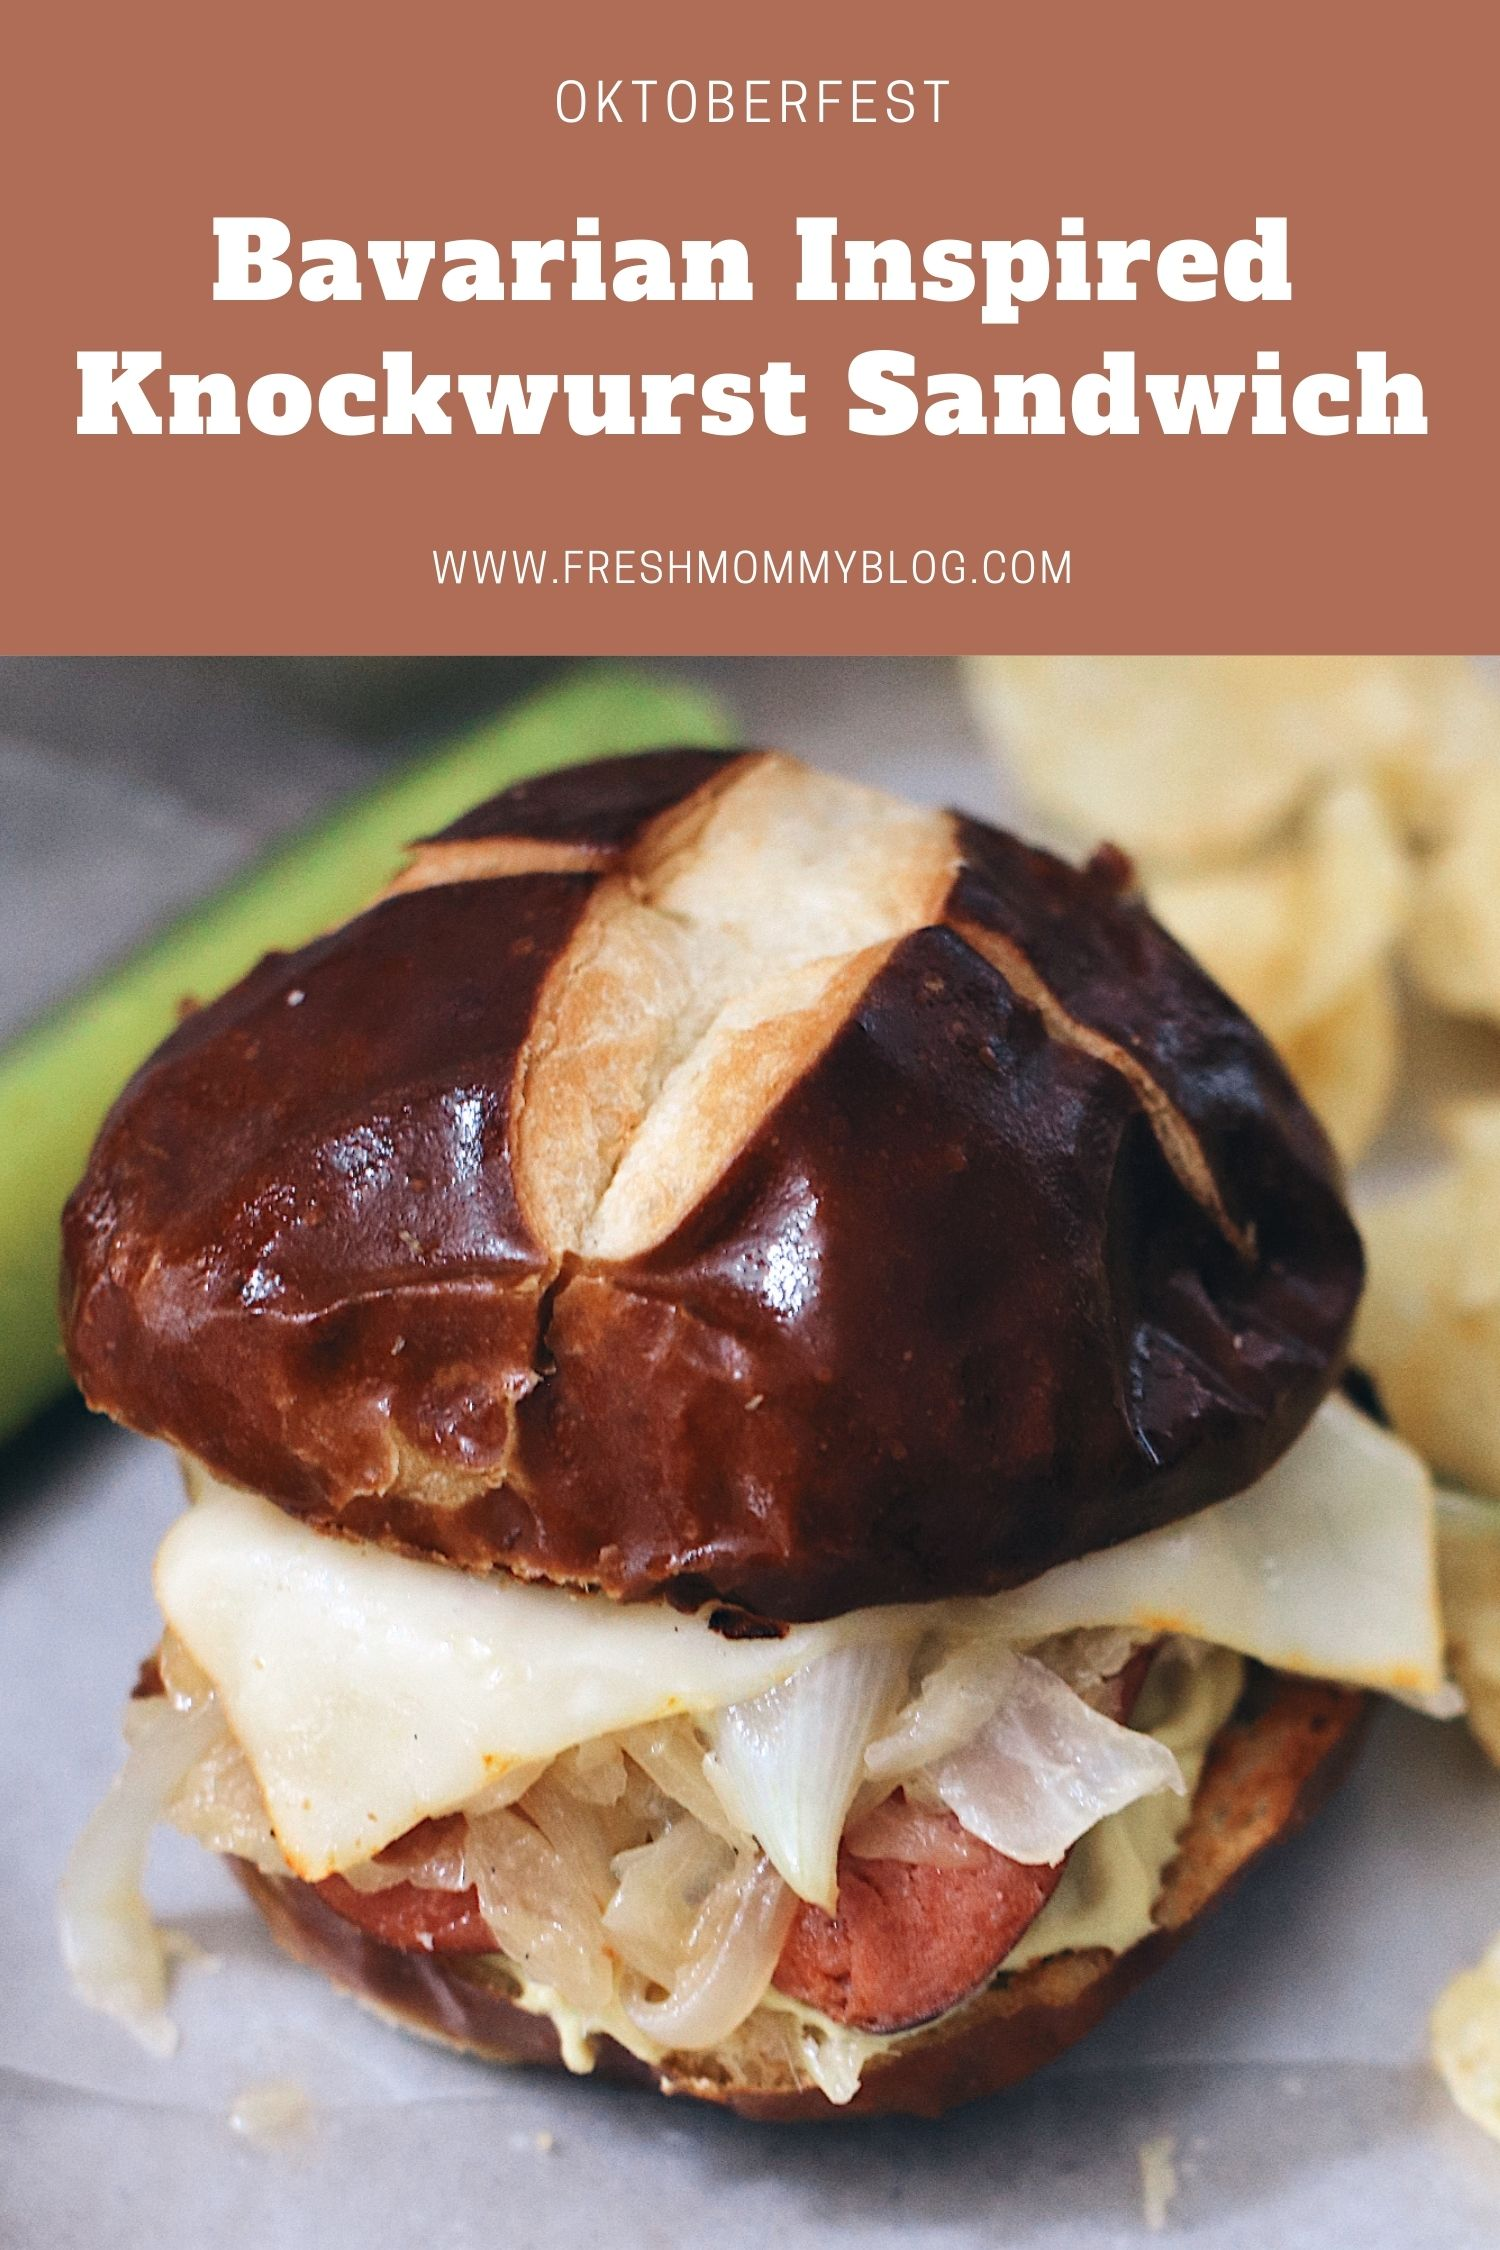 Frankenmuth, MI Bavarian Inspired Octoberfest Knockwurst Sandwich!